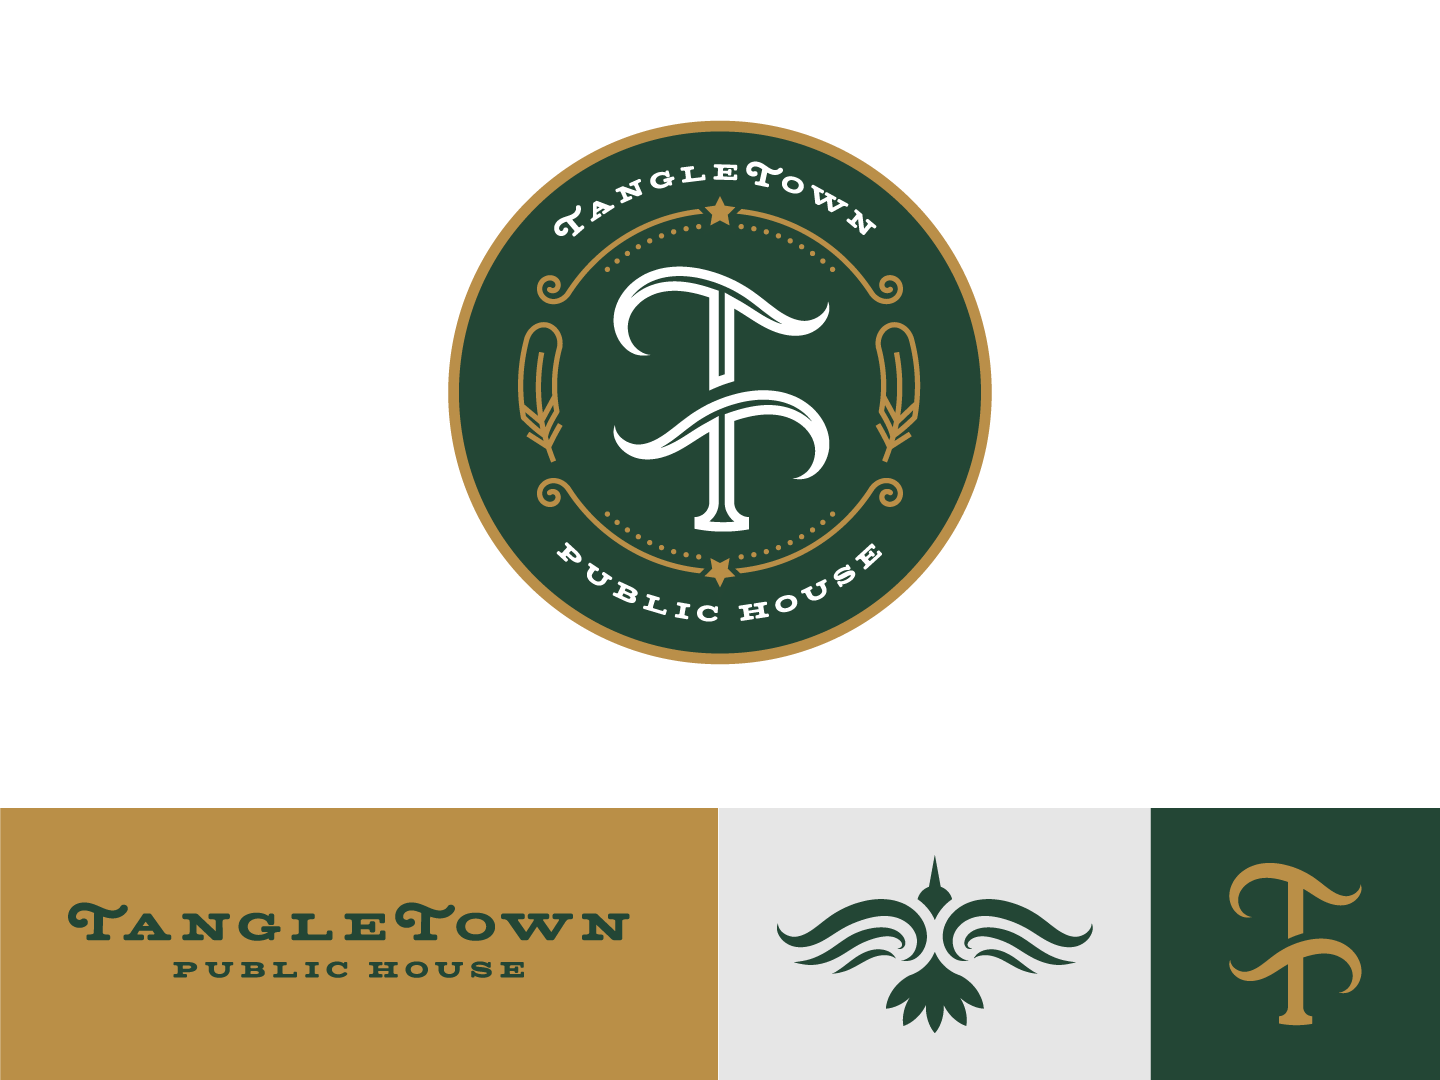 TangleTown Public House pacific northwest craft beer mico brewery brewery public house green and gold feather crow badge seal wordmark lettermark monogram pub seattle tangletown elysian rebrand logo design